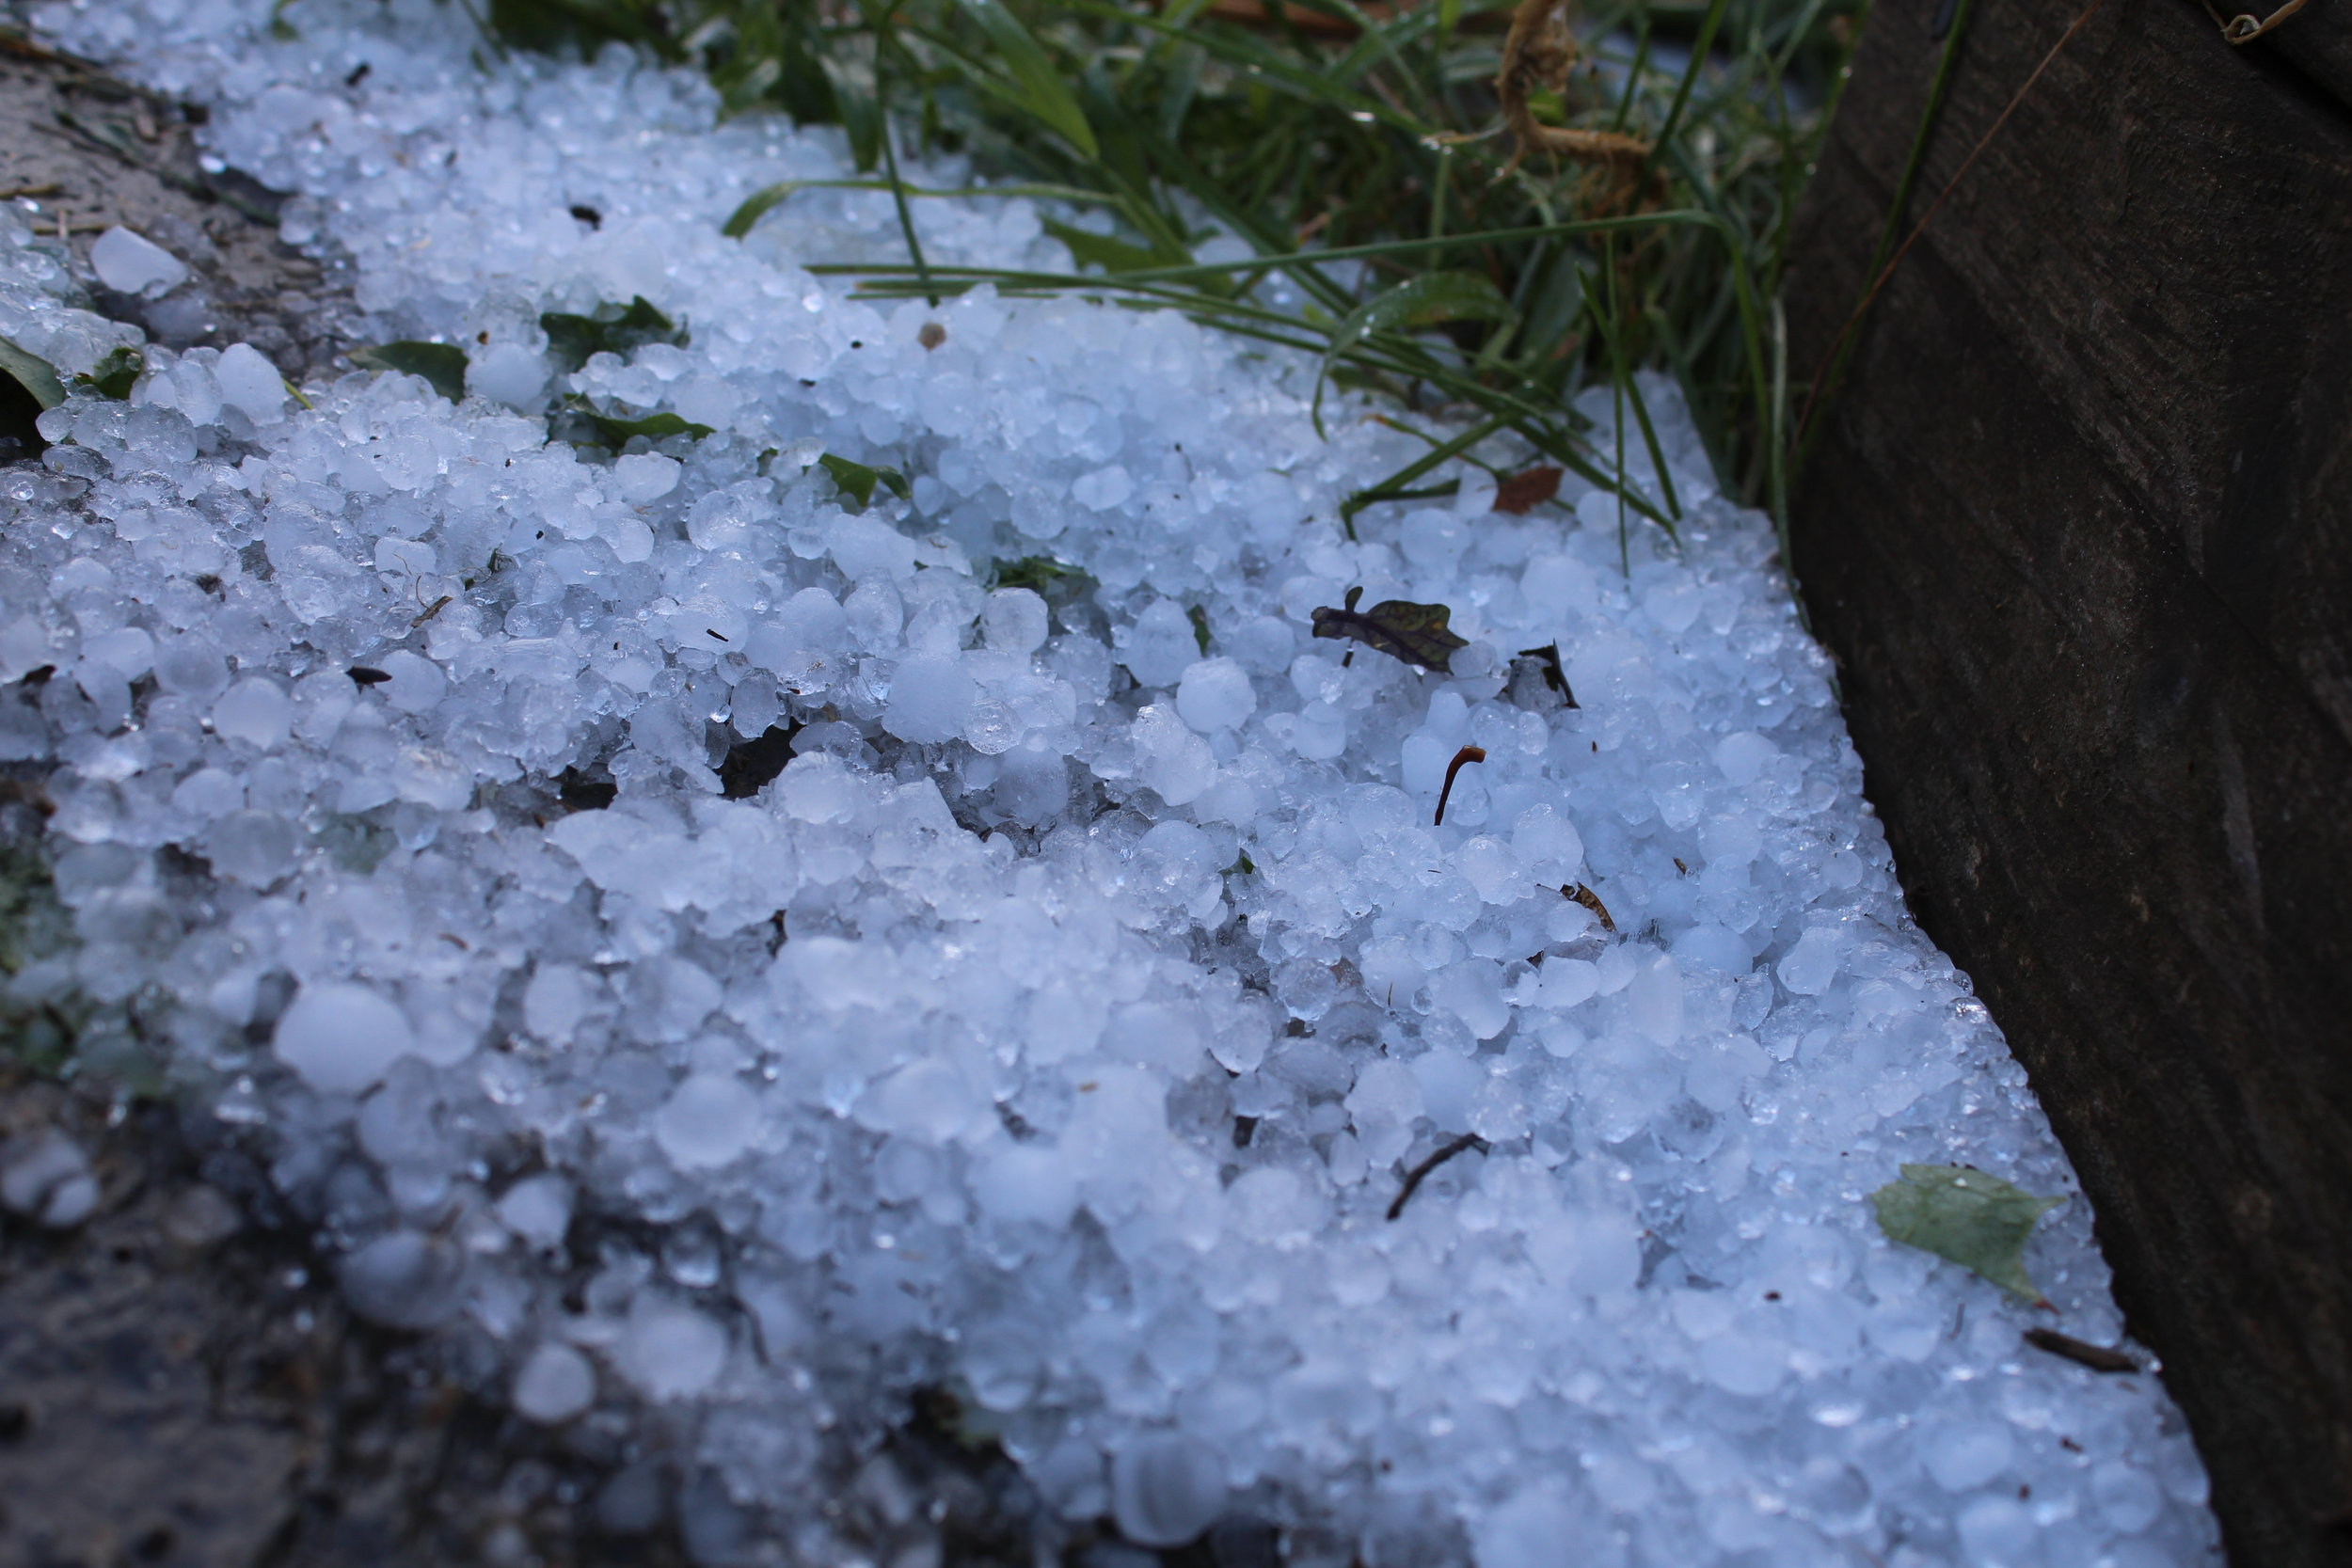 This is a photo I took when I got home, which was over an hour after the hail storm hit. This was no joke!